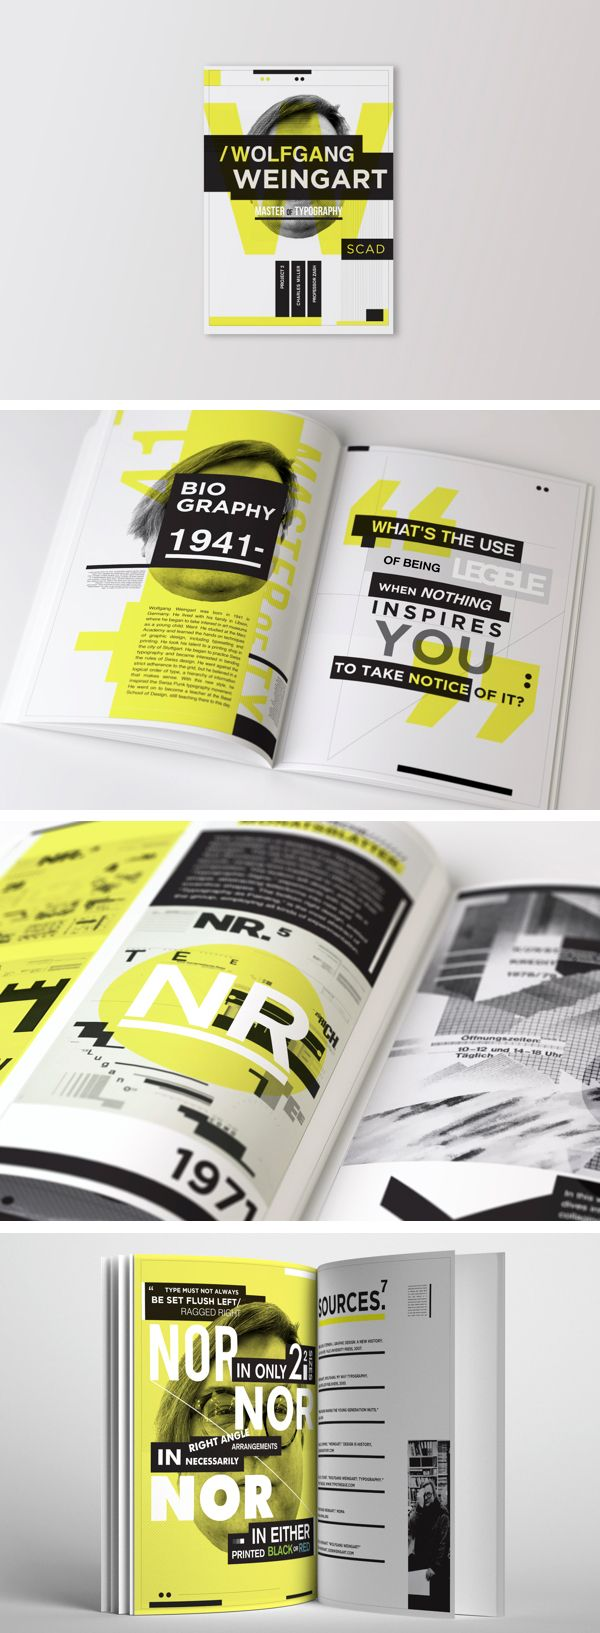 Wolfgang Weingart - Master of Typography by Charles Miller